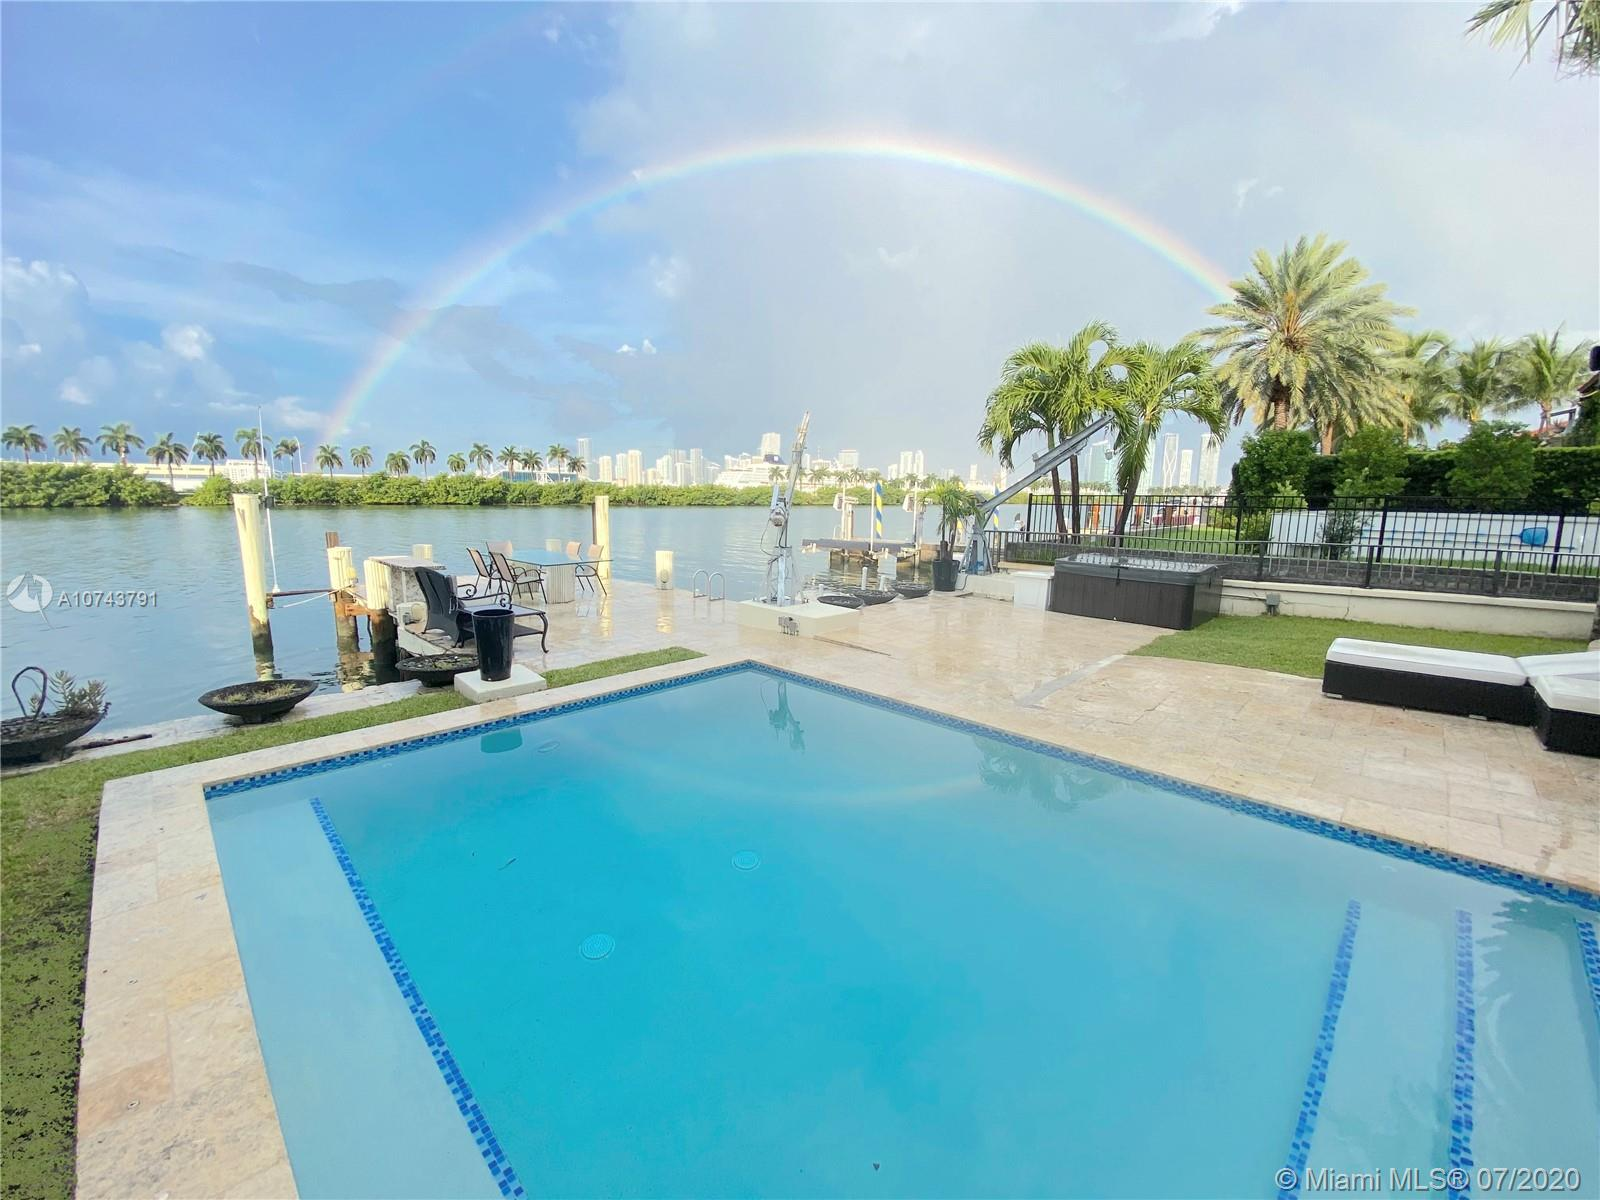 224 S coconut ln- miami-beach-fl-33139-a10743791-Pic01